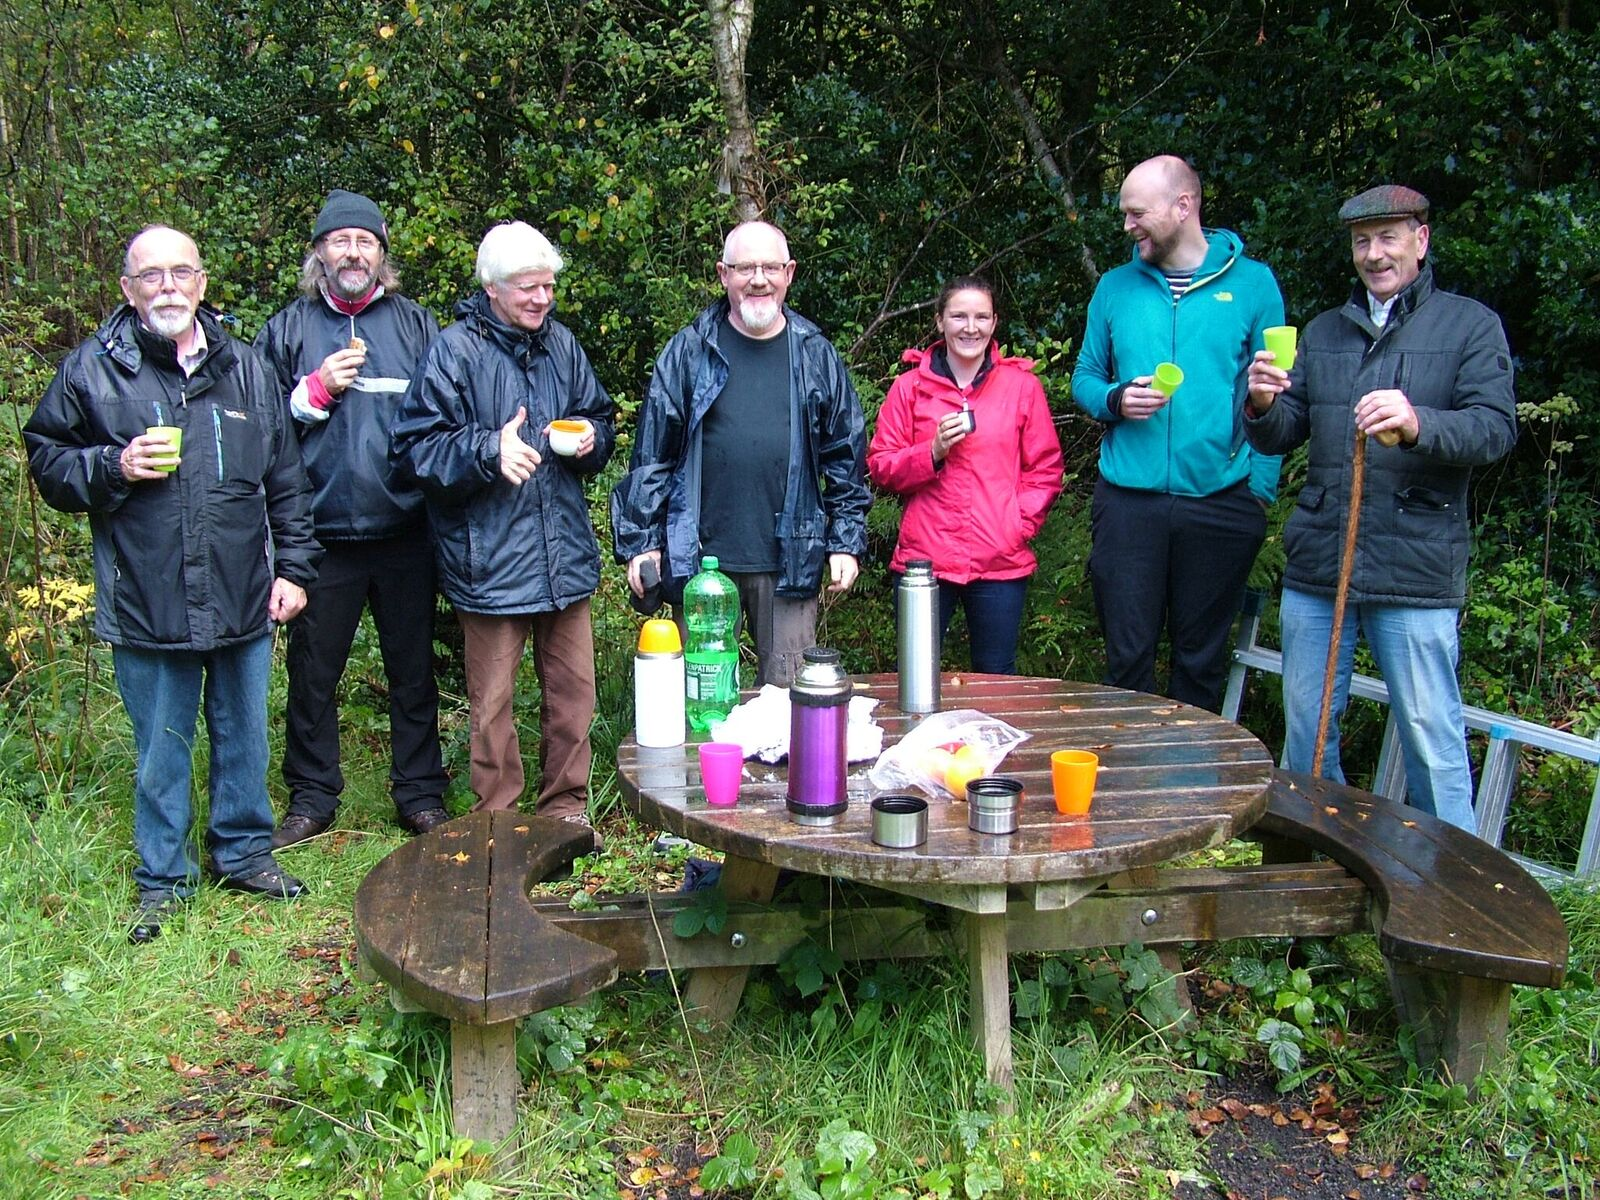 The pine marten den box team having a wet lunch on Abbeyleix Bog. From left to right: Dominic Kessie (Portlaoise Men's Shed), Euge O'Brien (Abbeyleix Bog Project), Hugh Shepard (Abbeyleix Bog Project), Ray Harte (Portlaoise Men's Shed), Denise O'Meara (Waterford Institute of Technology), David Tosh (Ecologist), Joe Grant (Portlaoise Men's Shed).